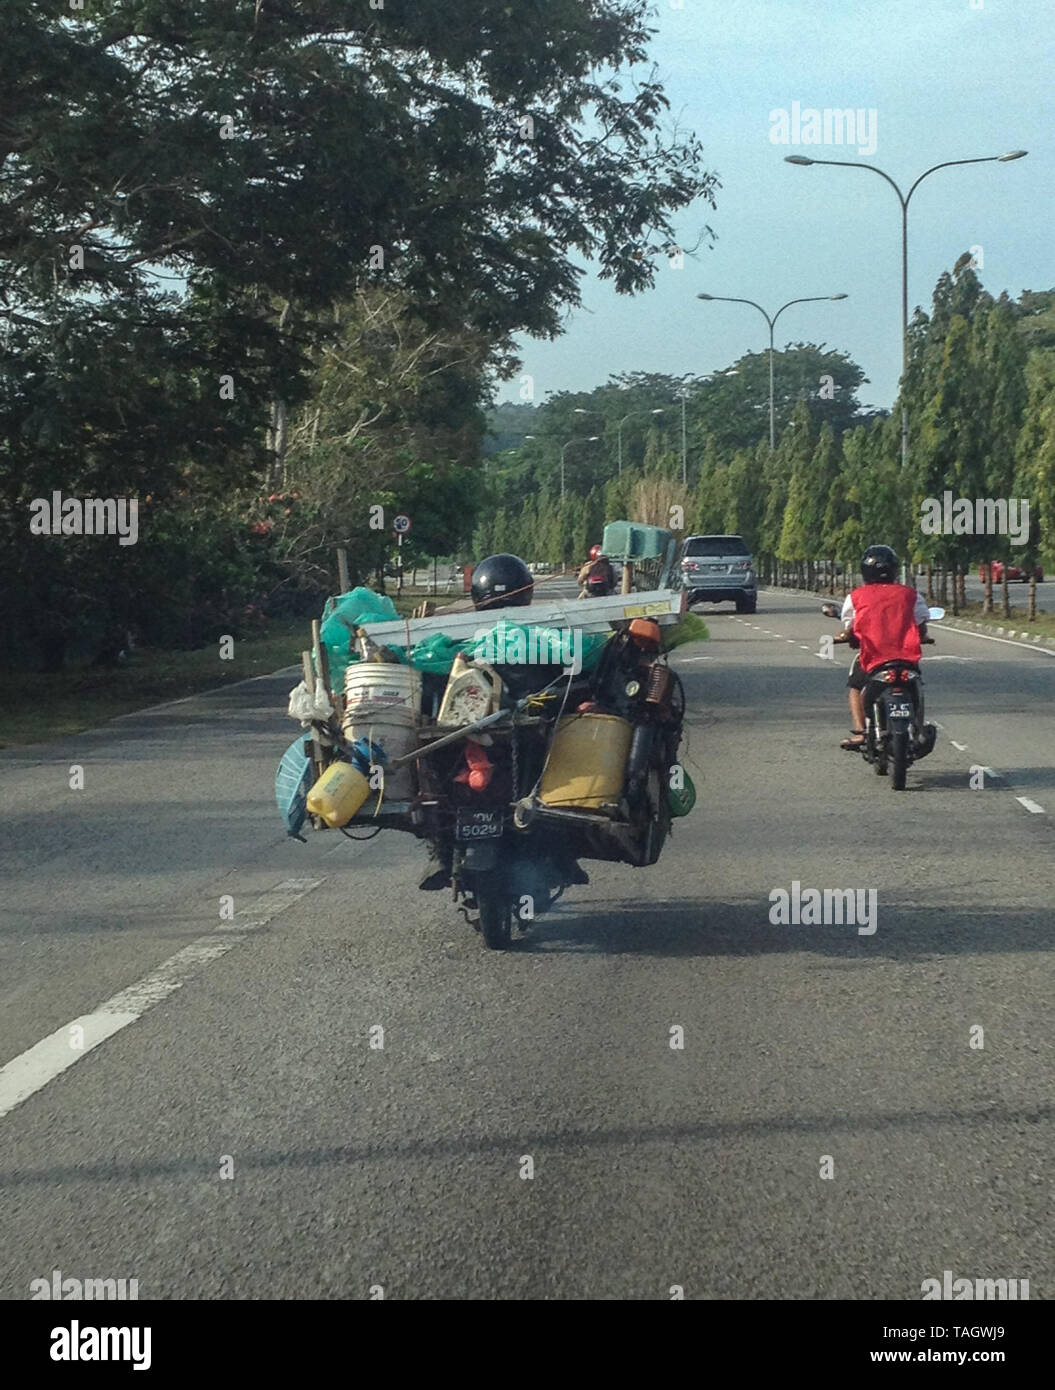 A motorcycle carrying excess baggage in Malaysia - Stock Image